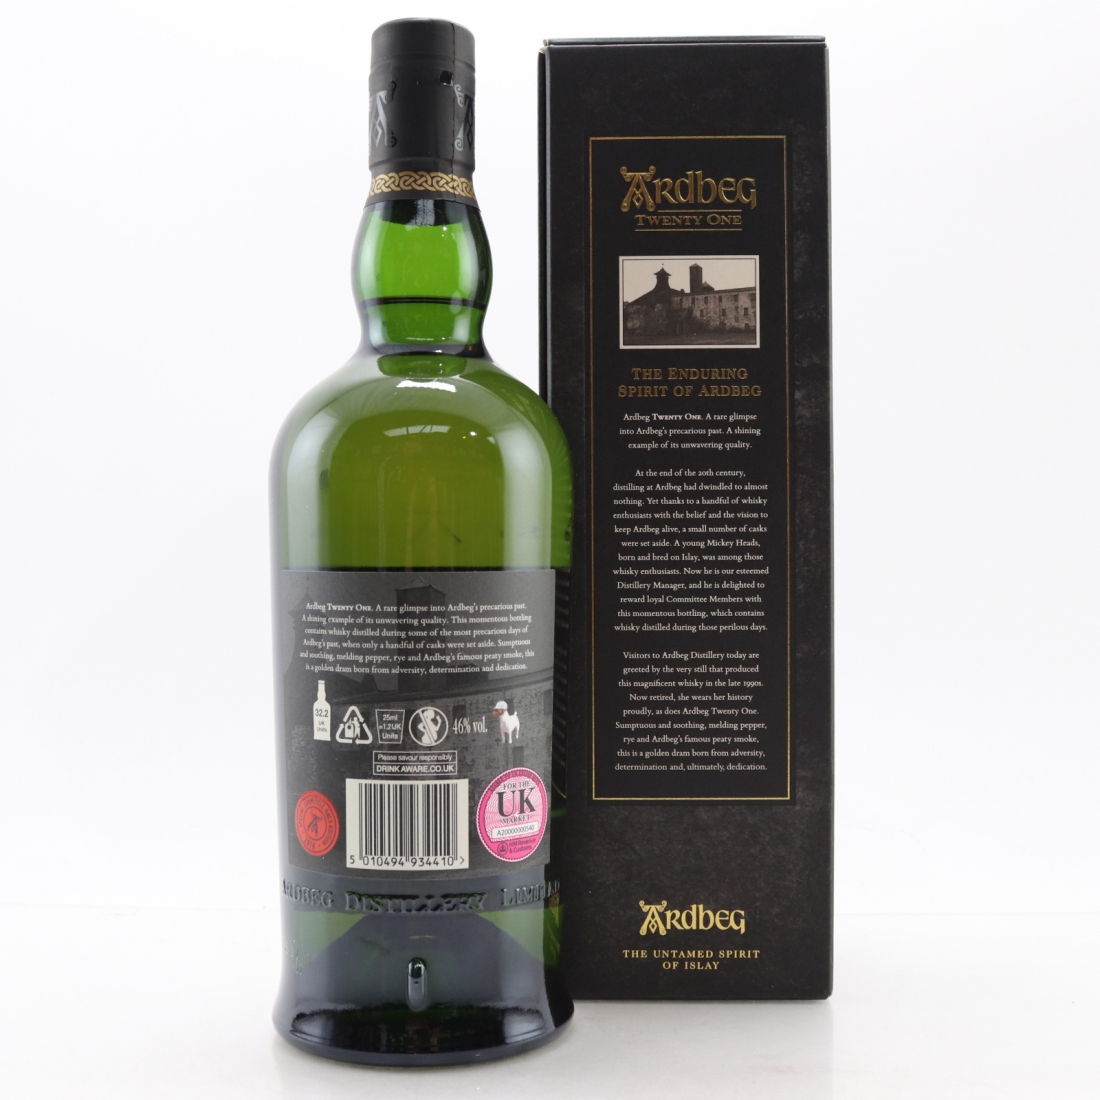 Ardbeg 21 Year Old Committee Release 2016